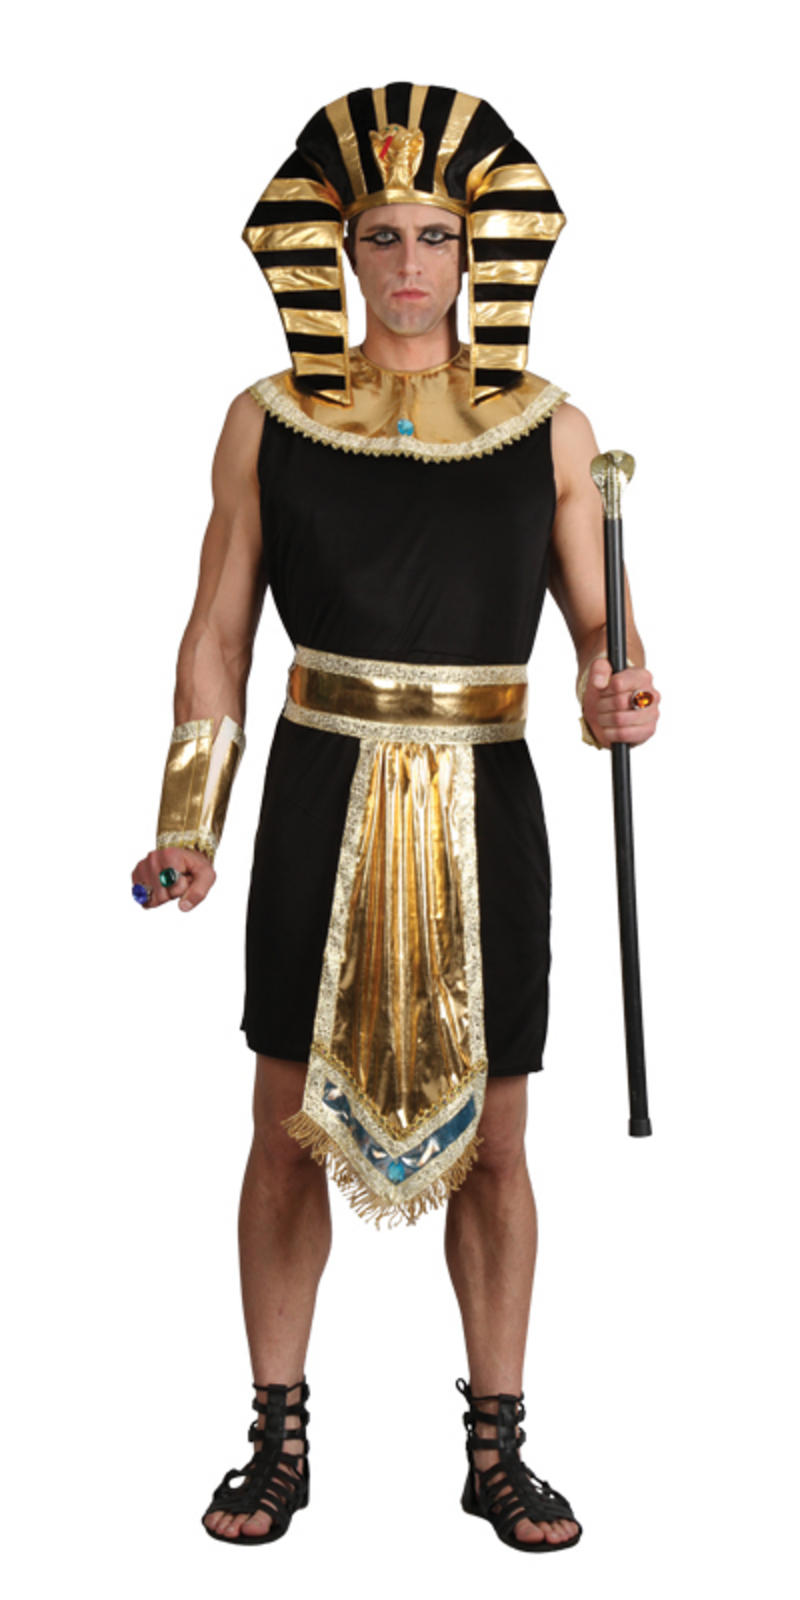 Egyptian Queen clipart egyptian man Ancient Egyptian Egyptian costume King